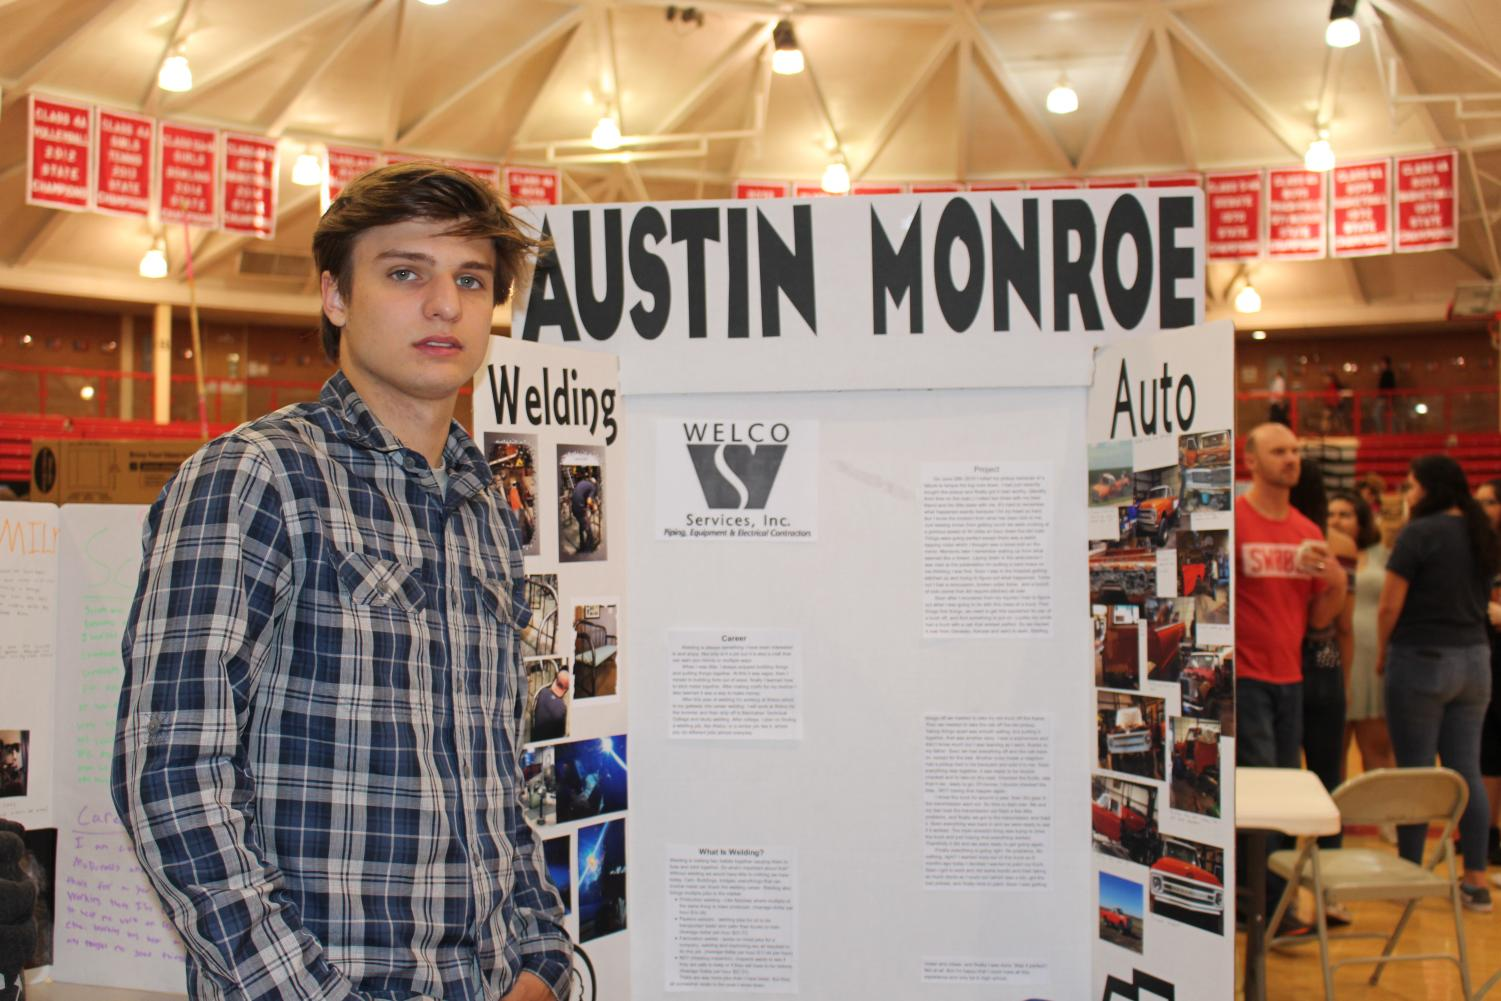 Austin+Monroe%27s+showcase+shows+his+experience+in+auto+and+welding.+